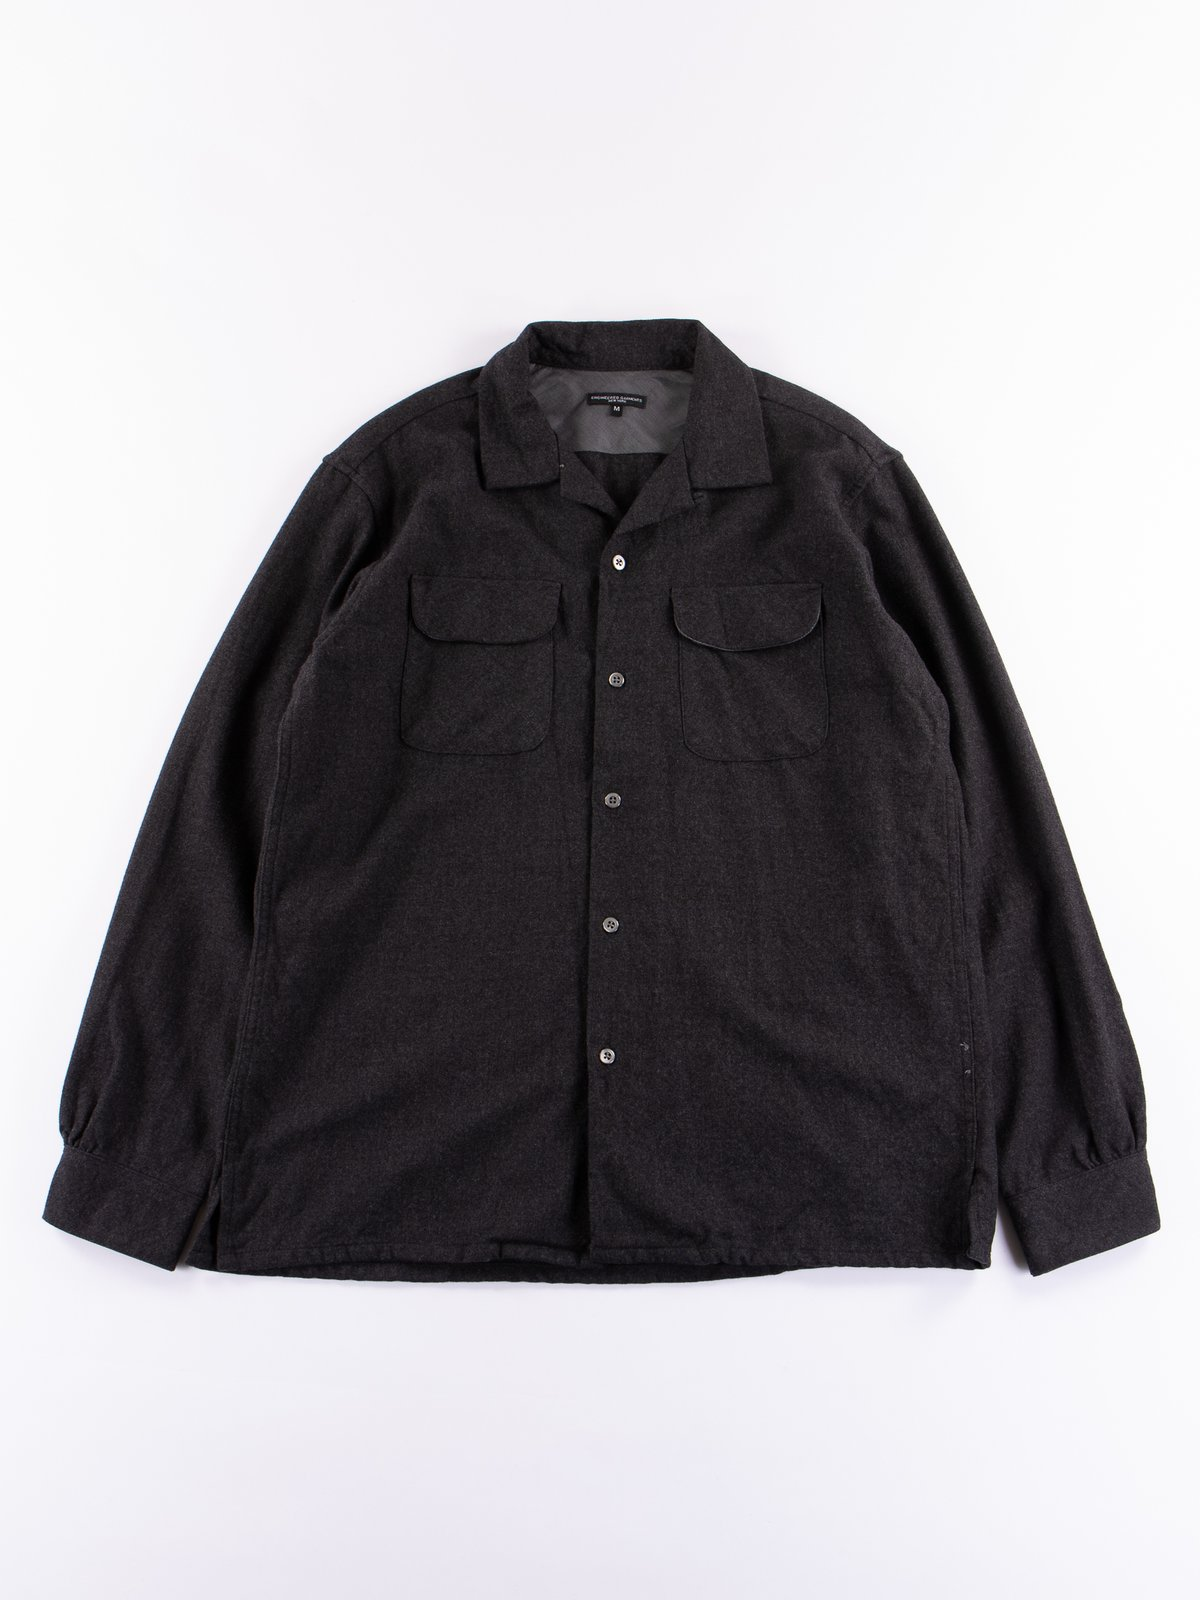 Charcoal Heather Worsted Wool Flannel Classic Shirt - Image 1